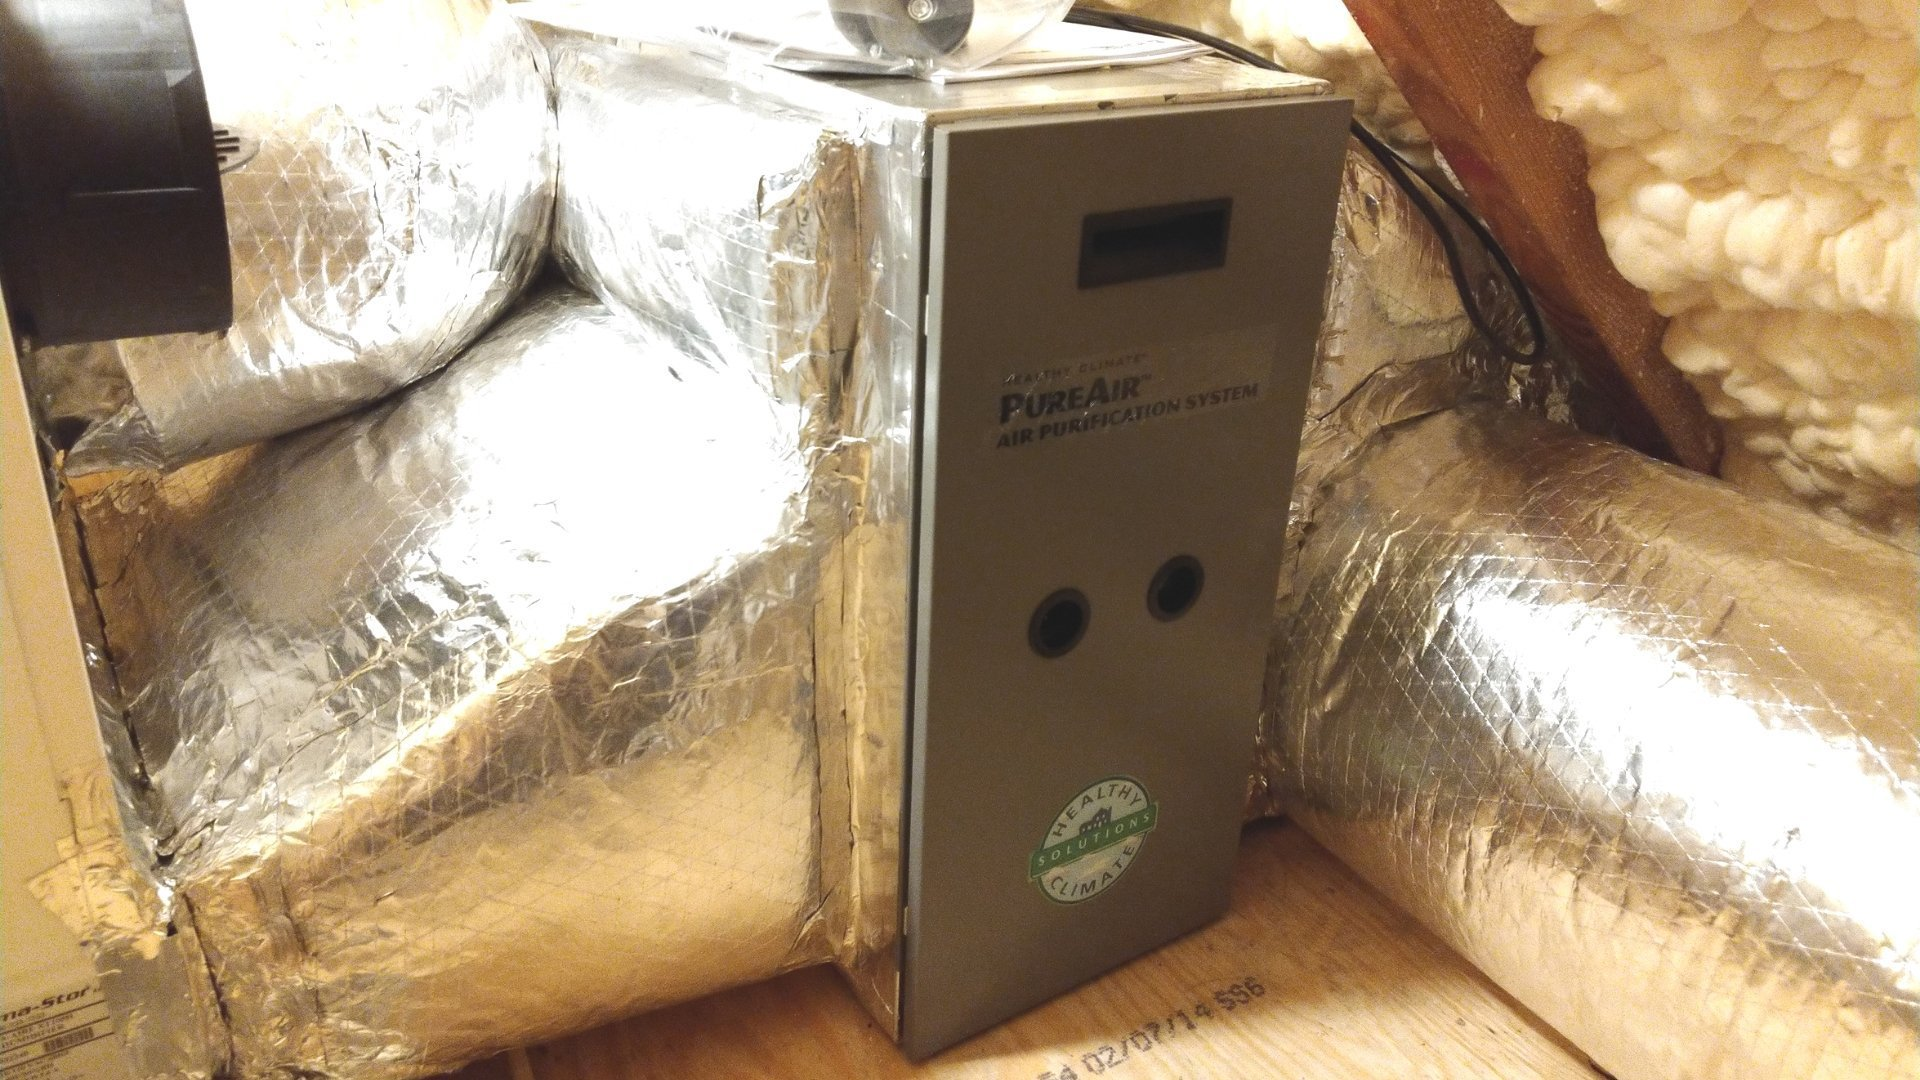 Air Purification Installed in Duct Work - Page Gallery